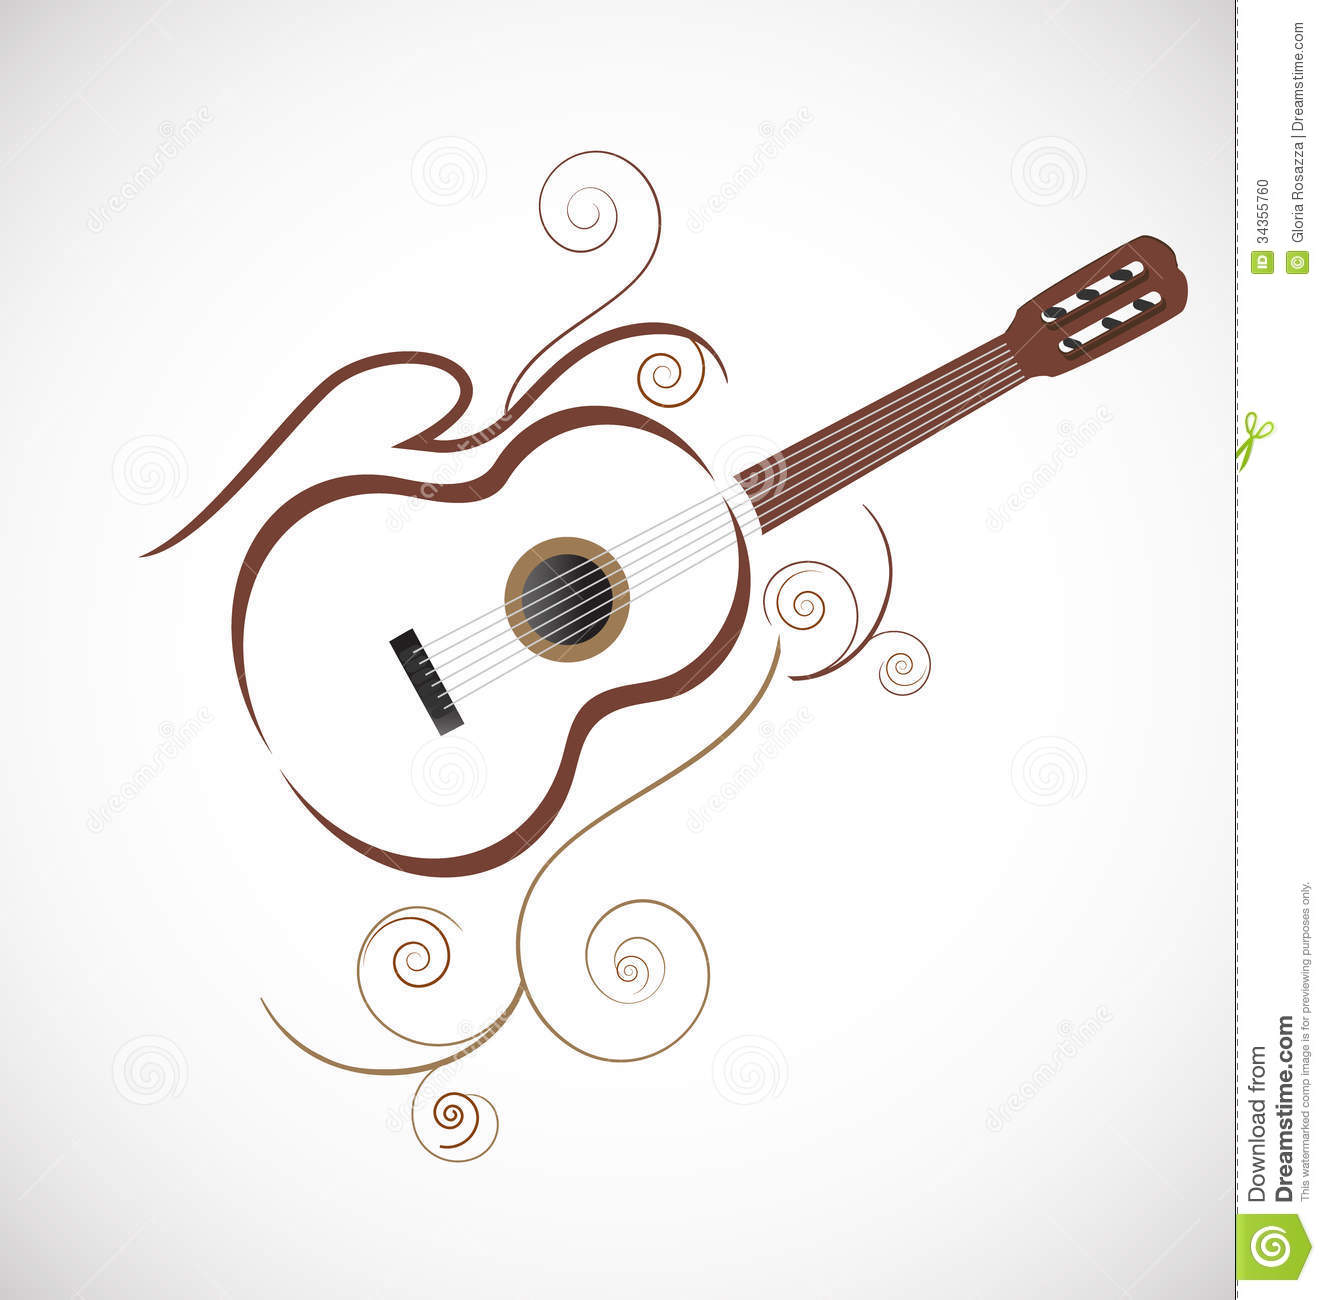 Stylized Guitar Logo Stock Photo - Image: 34355760